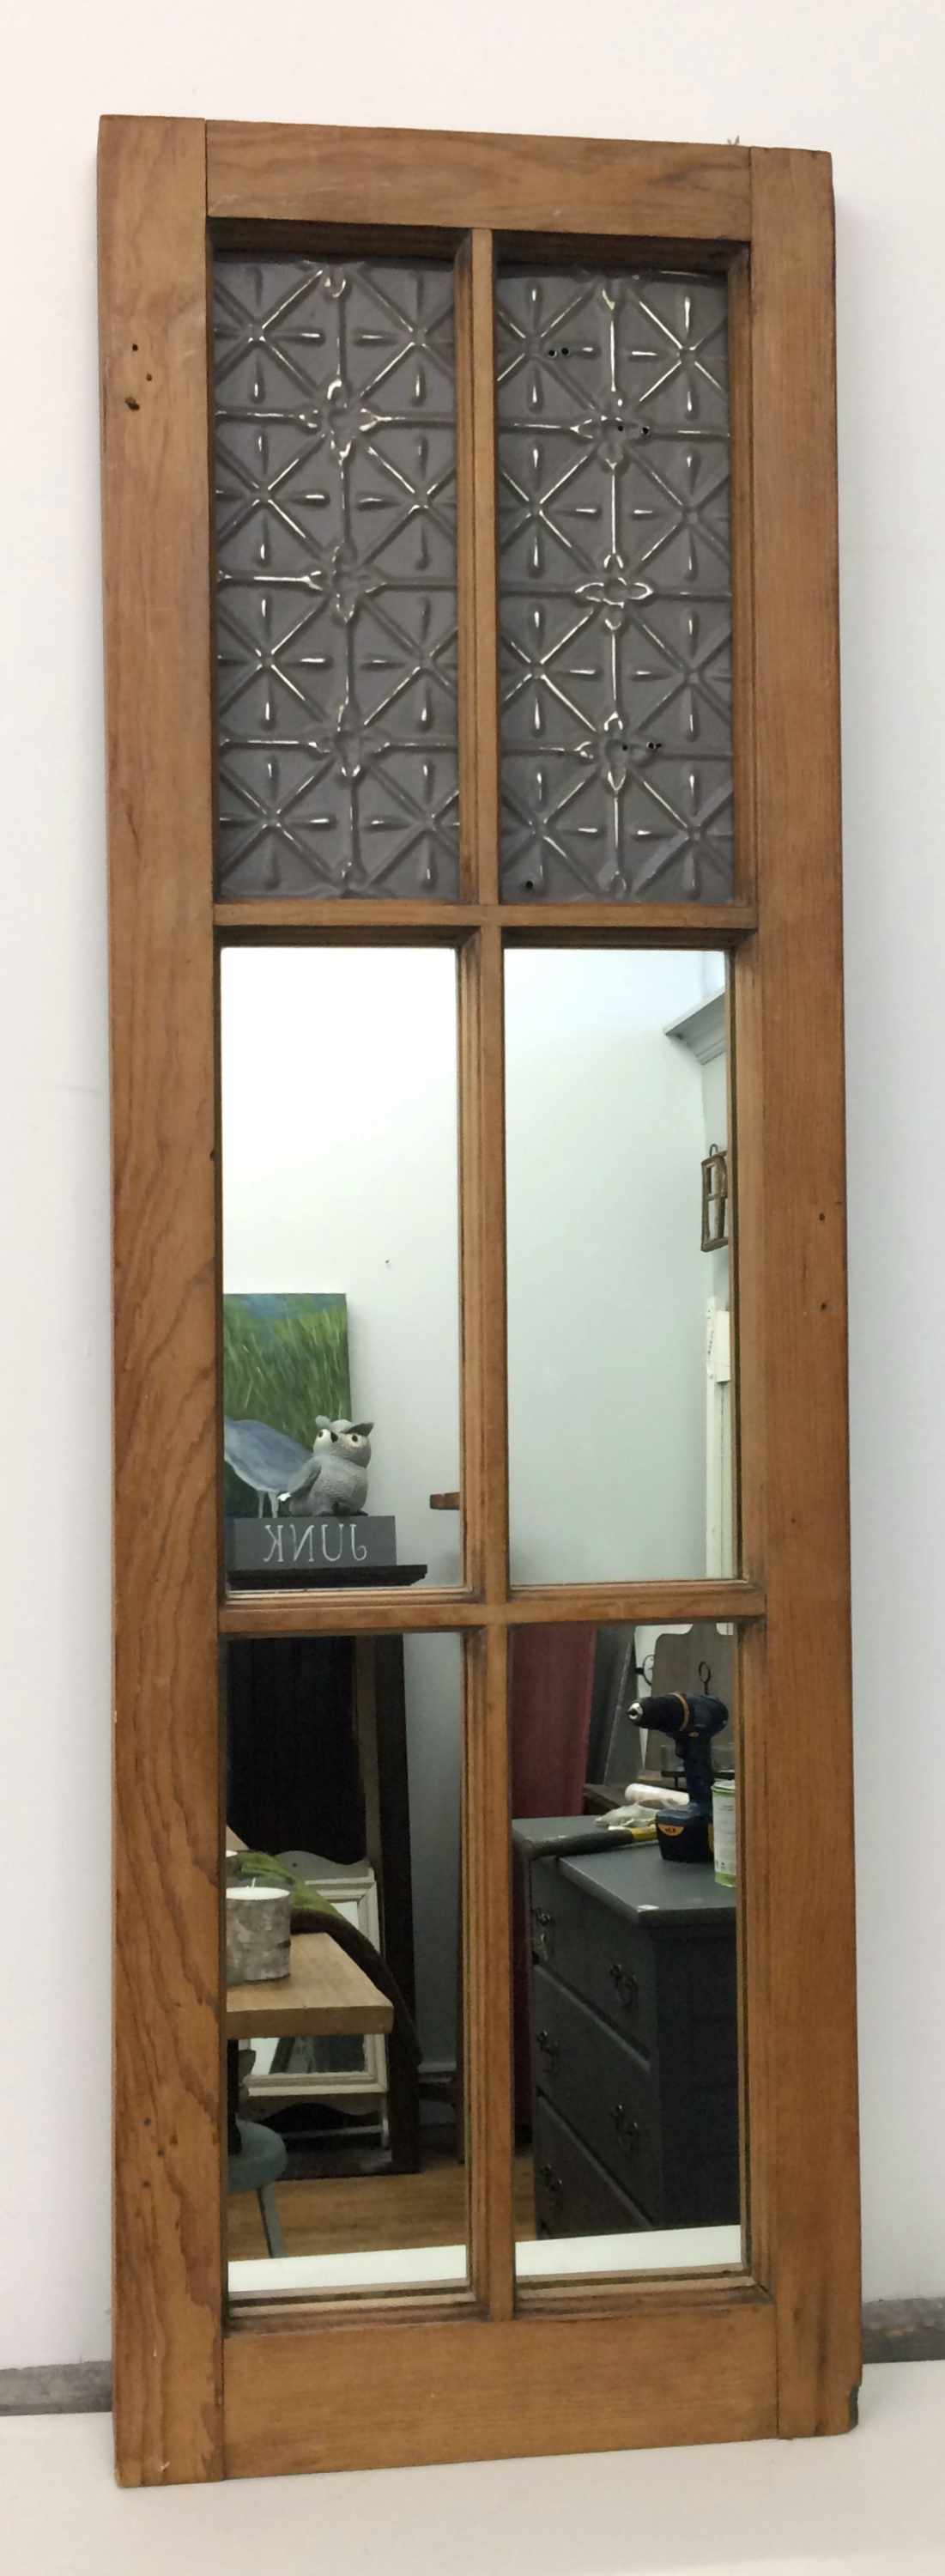 Using old window frames cottagebluehome for Using old windows as picture frames